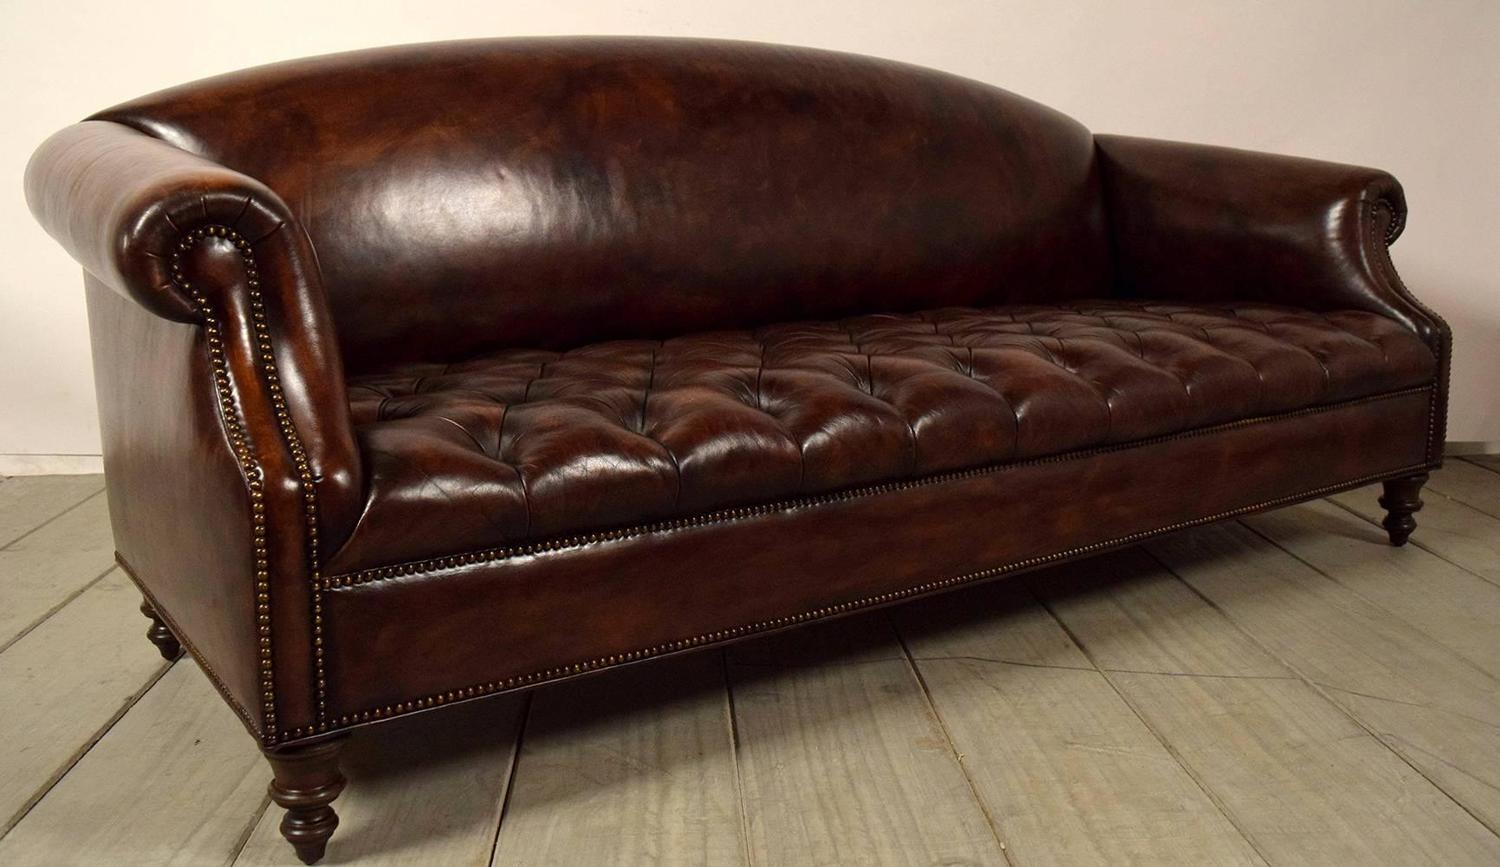 vintage chesterfield tufted leather sofa at 1stdibs. Black Bedroom Furniture Sets. Home Design Ideas